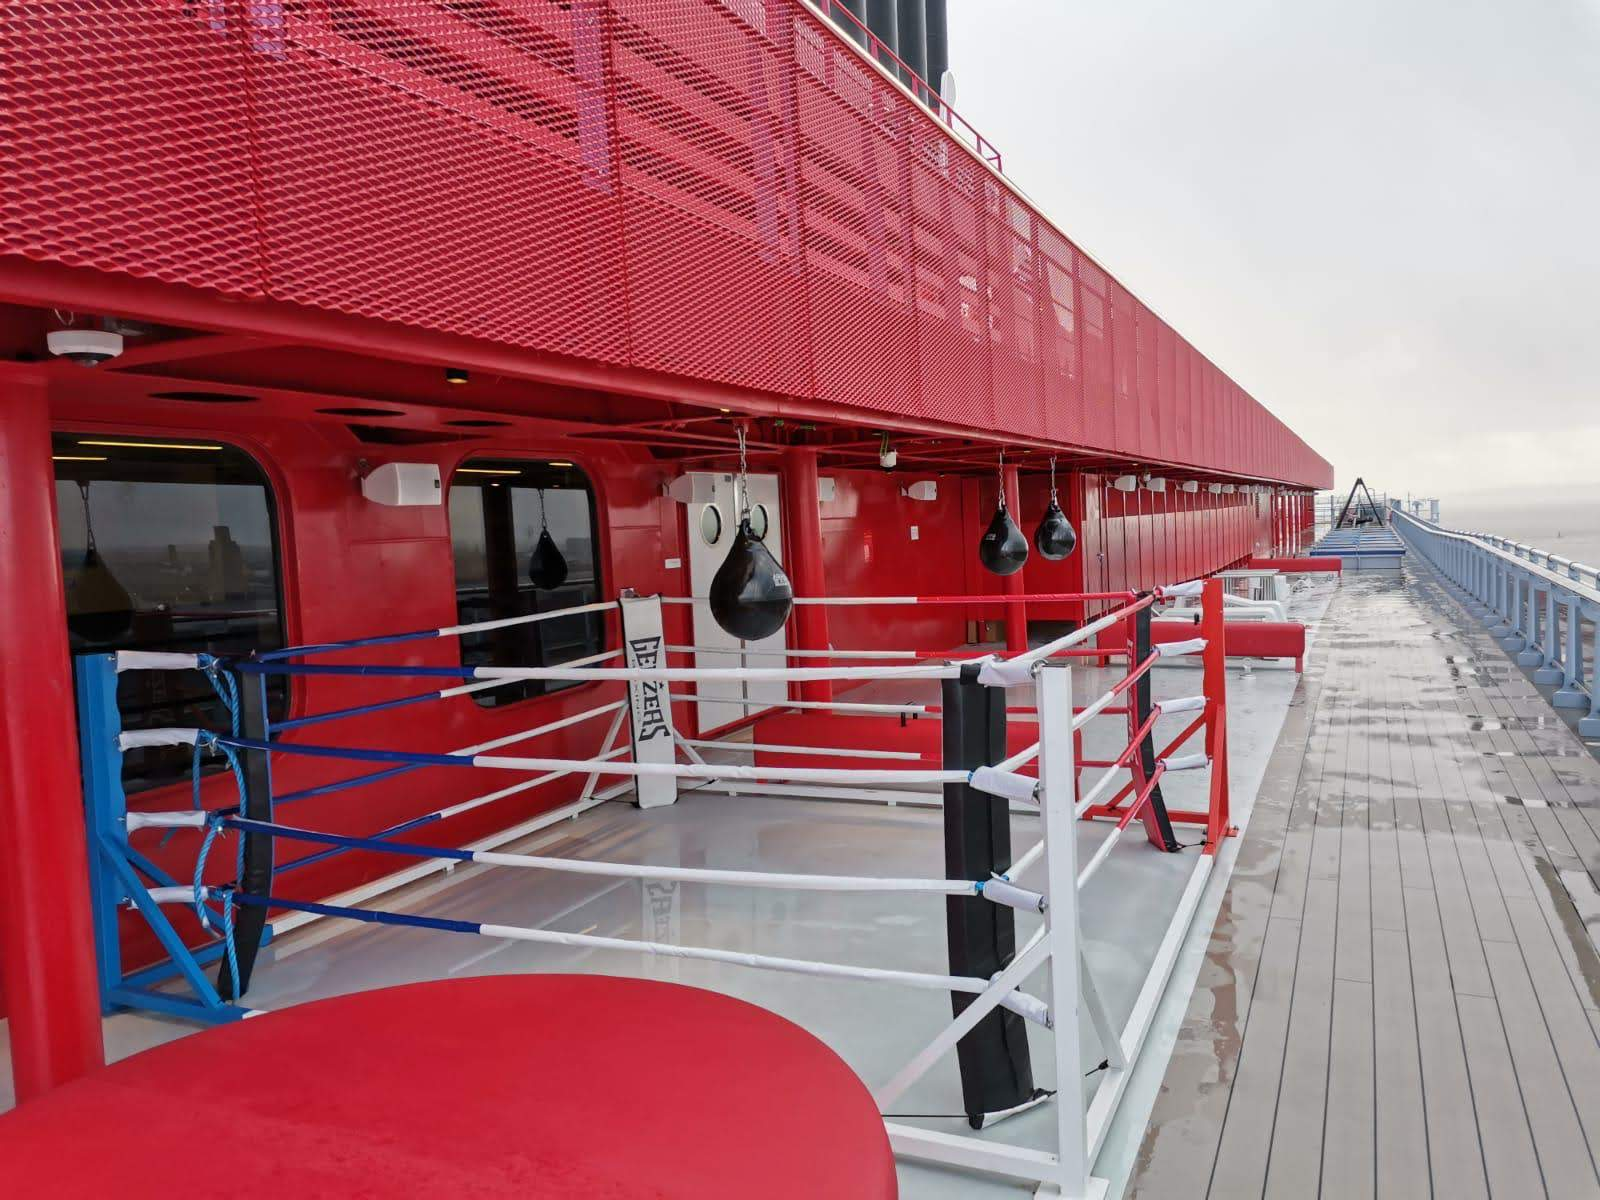 Boxing ring onboard the Scarlet Lady, Virgin Voyages